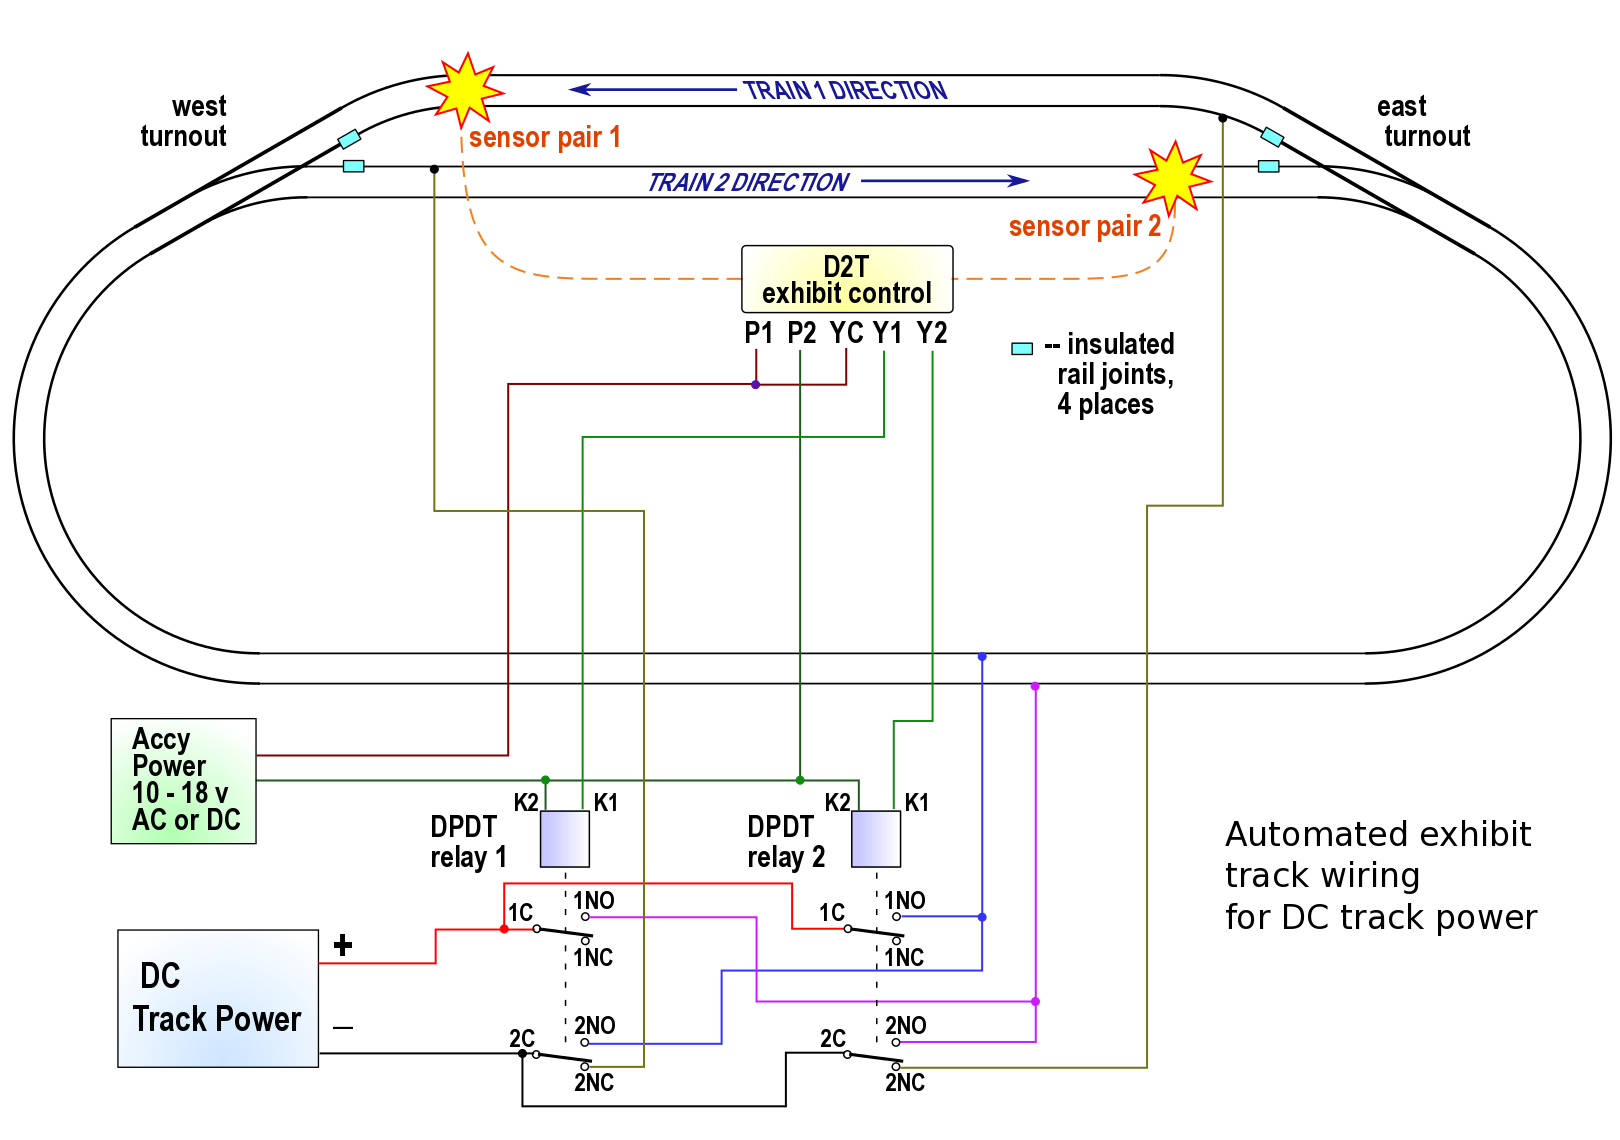 hight resolution of loop wiring diagram for dc model railroad model trains train model model railway dc wiring diagrams